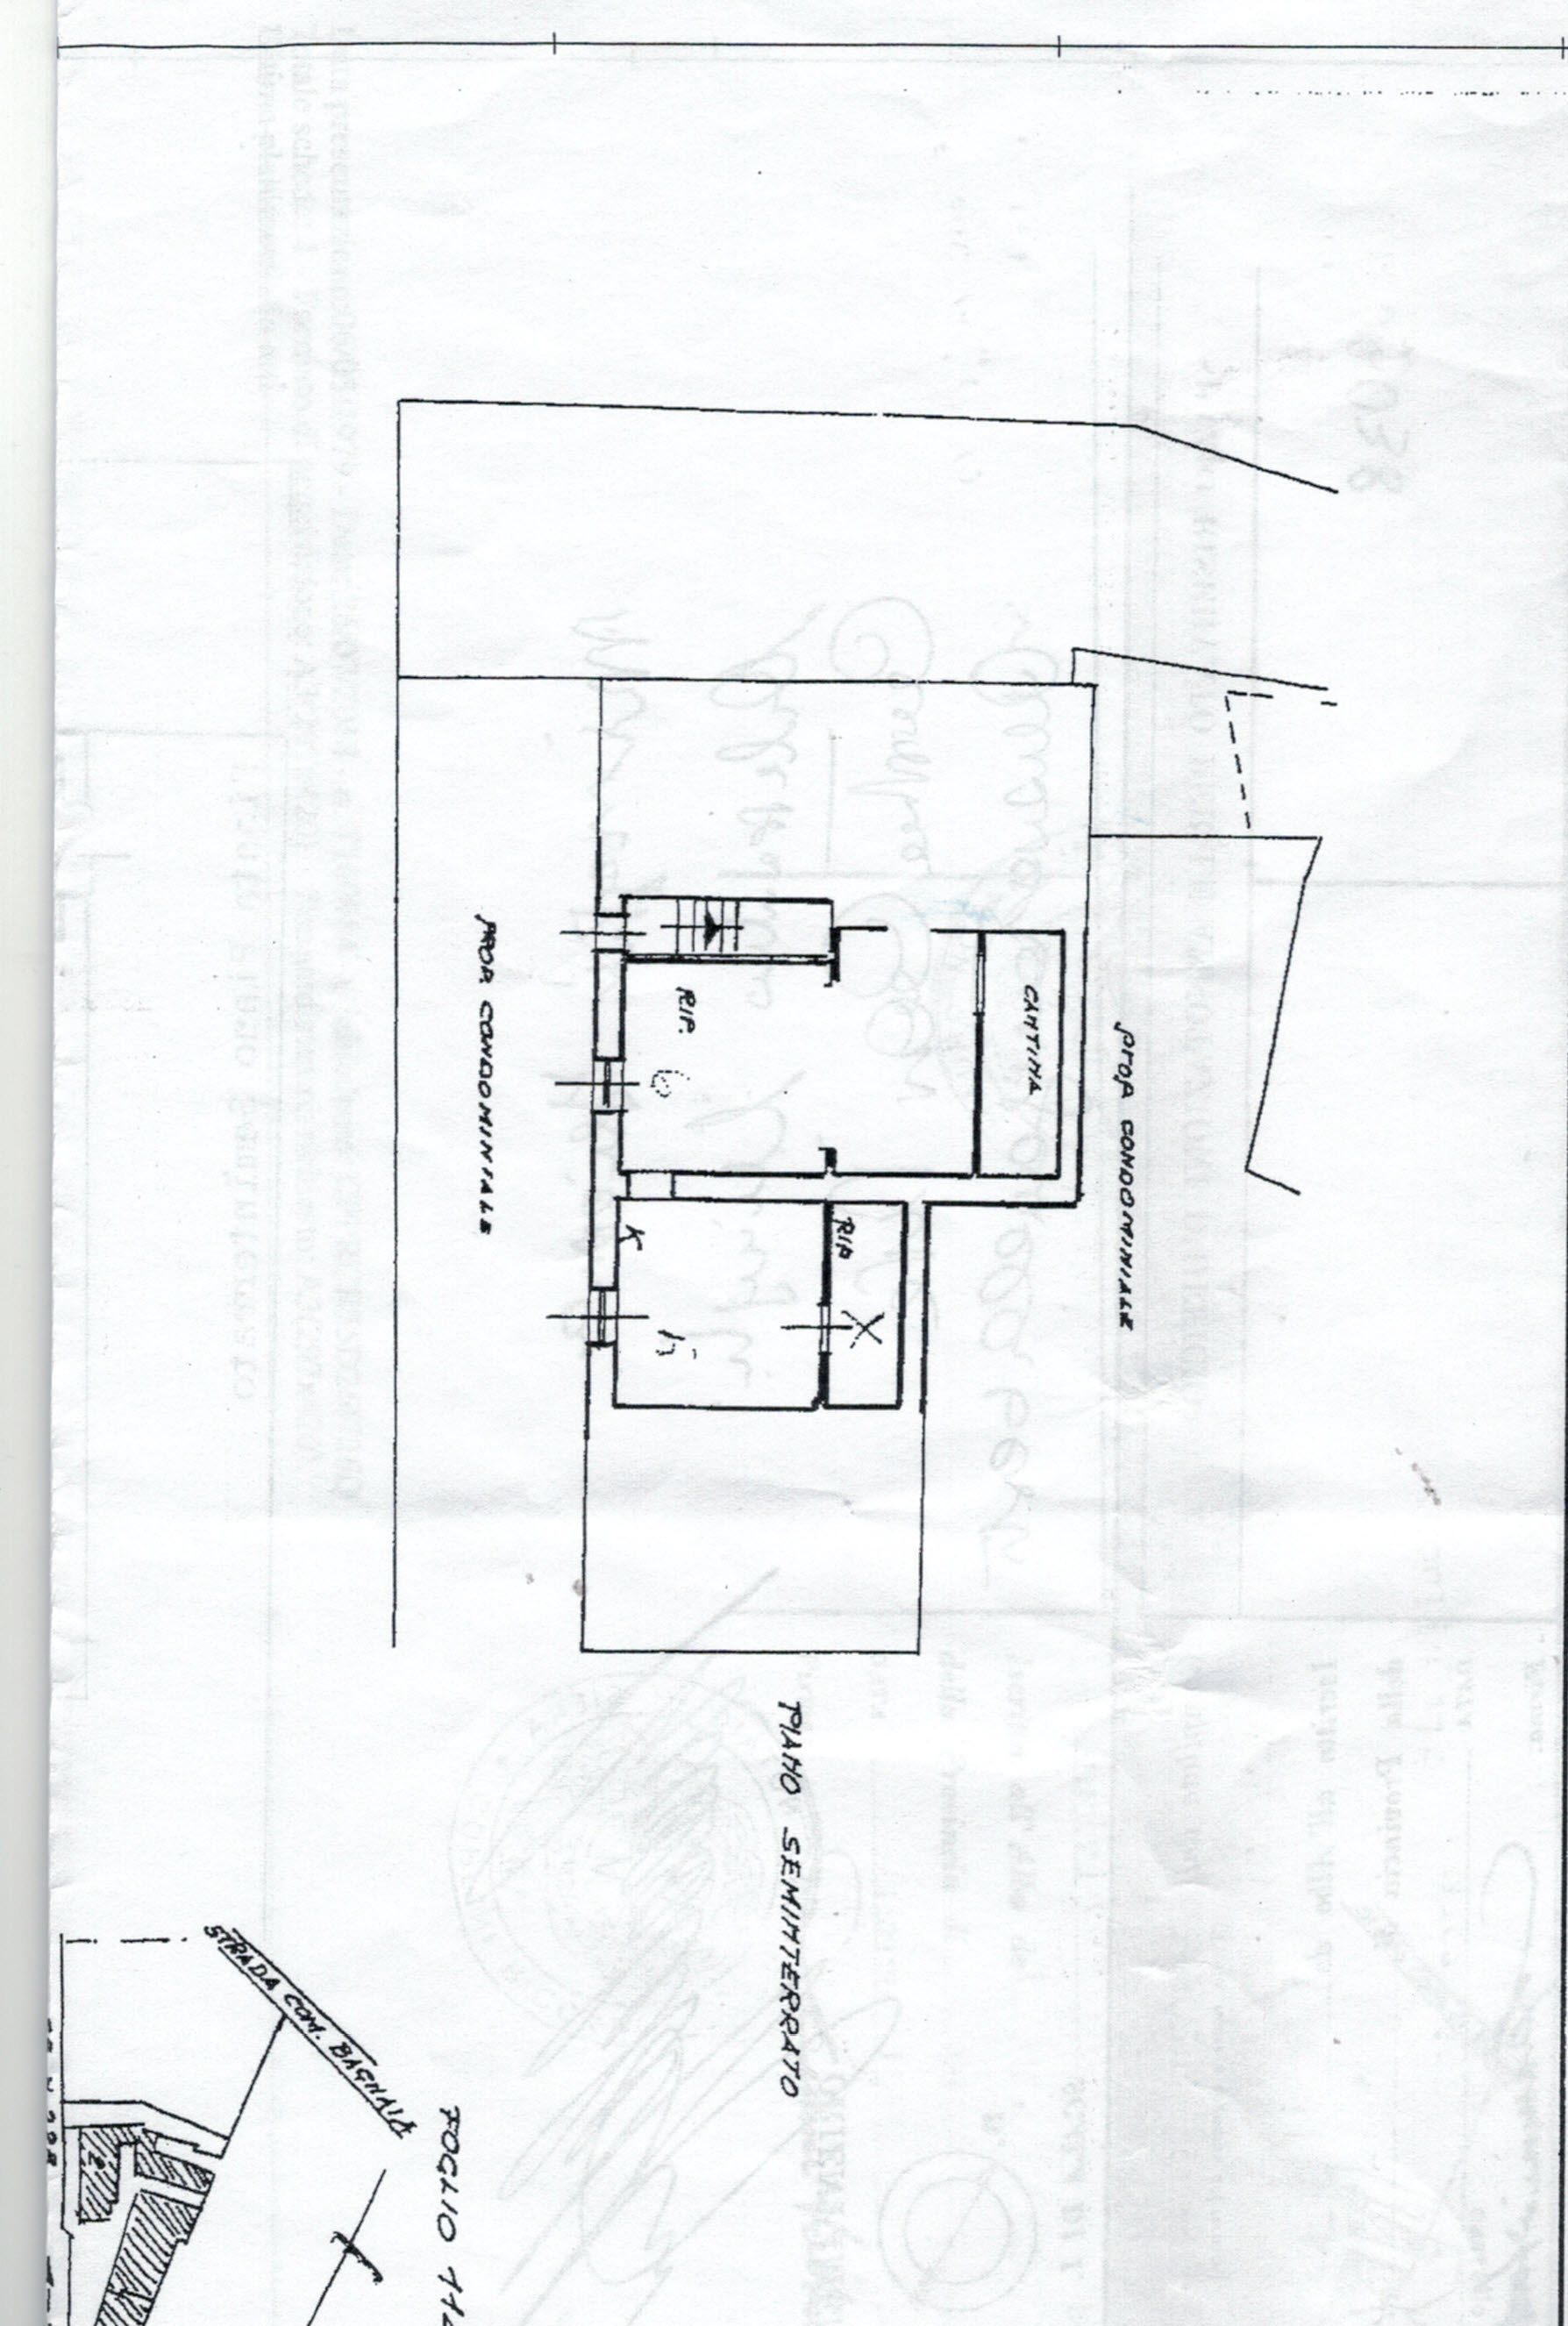 Plan 1/4 for ref. 812